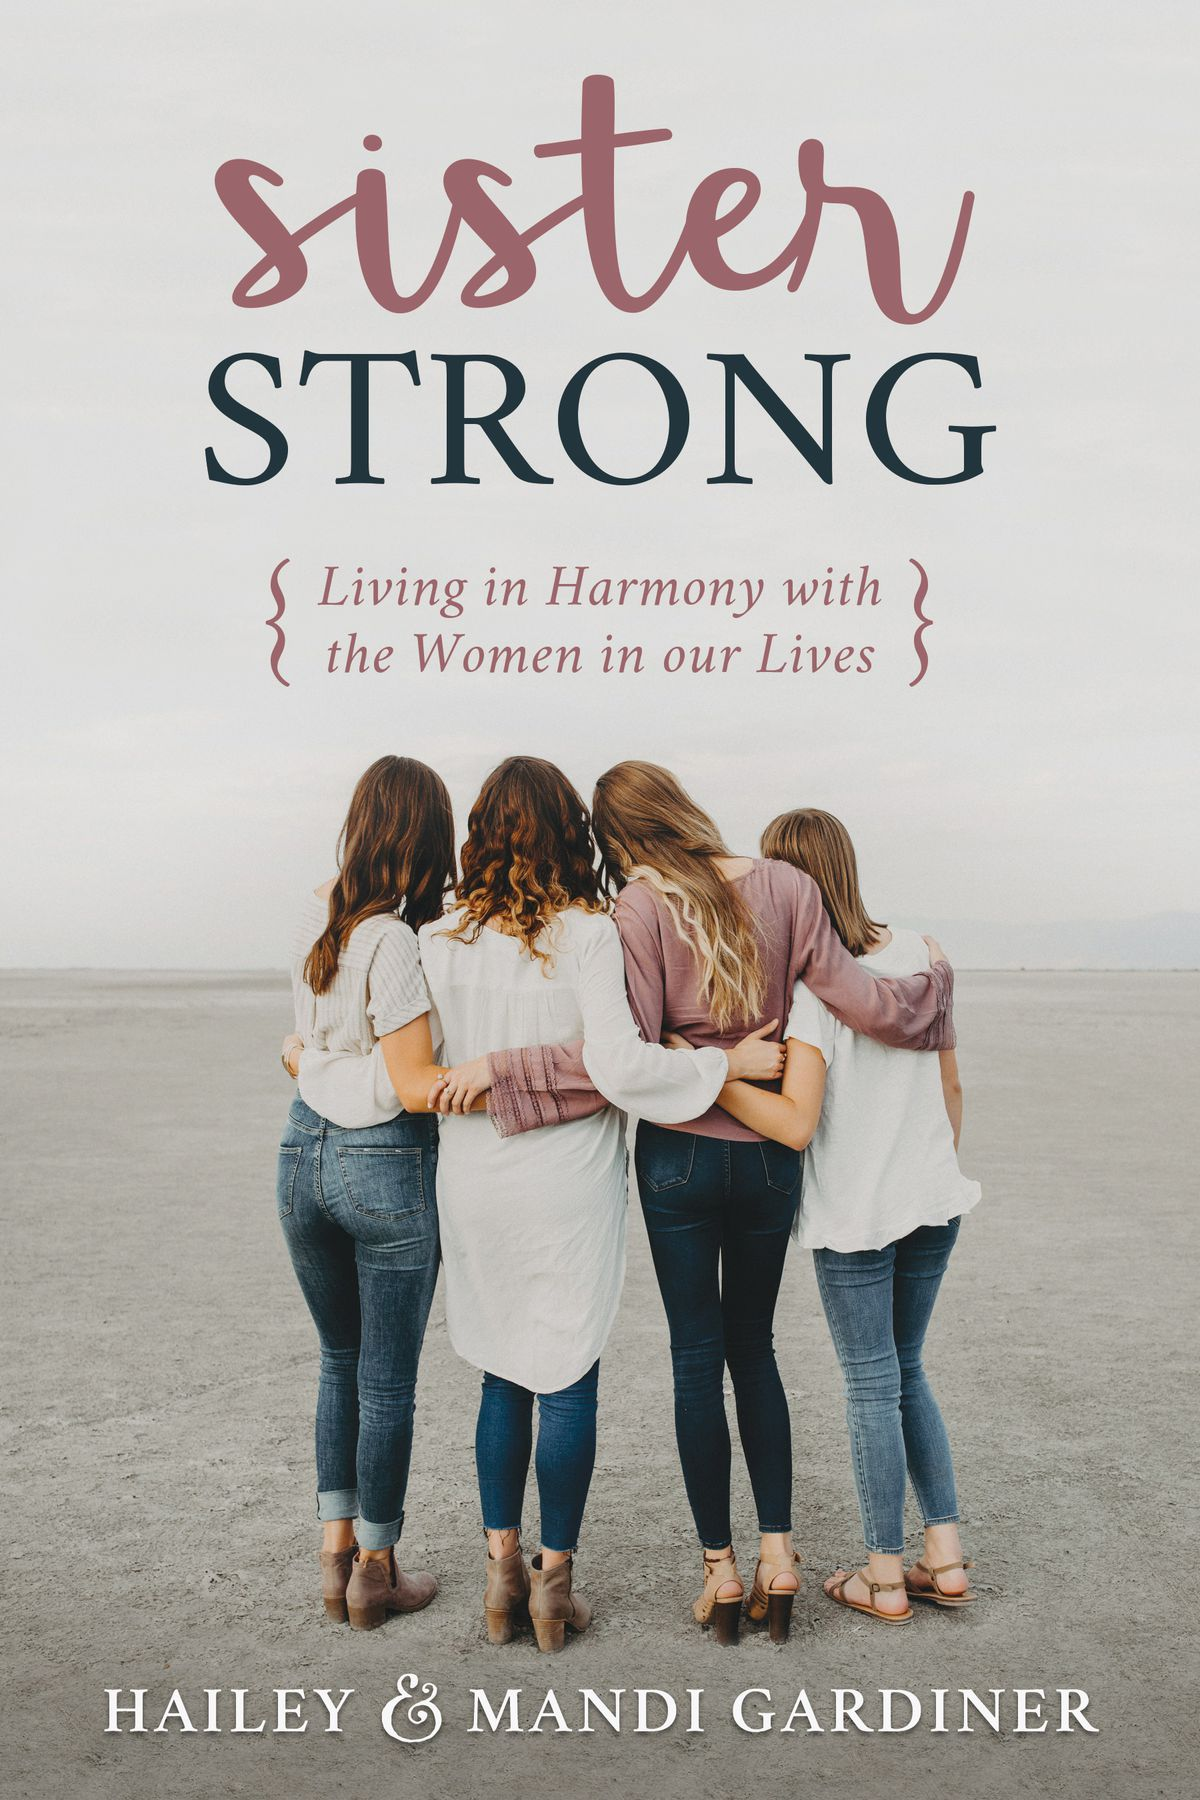 """""""Sister Strong: Living in Harmony With the Women in Our Lives"""" is by Hailey and Mandi Gardiner."""